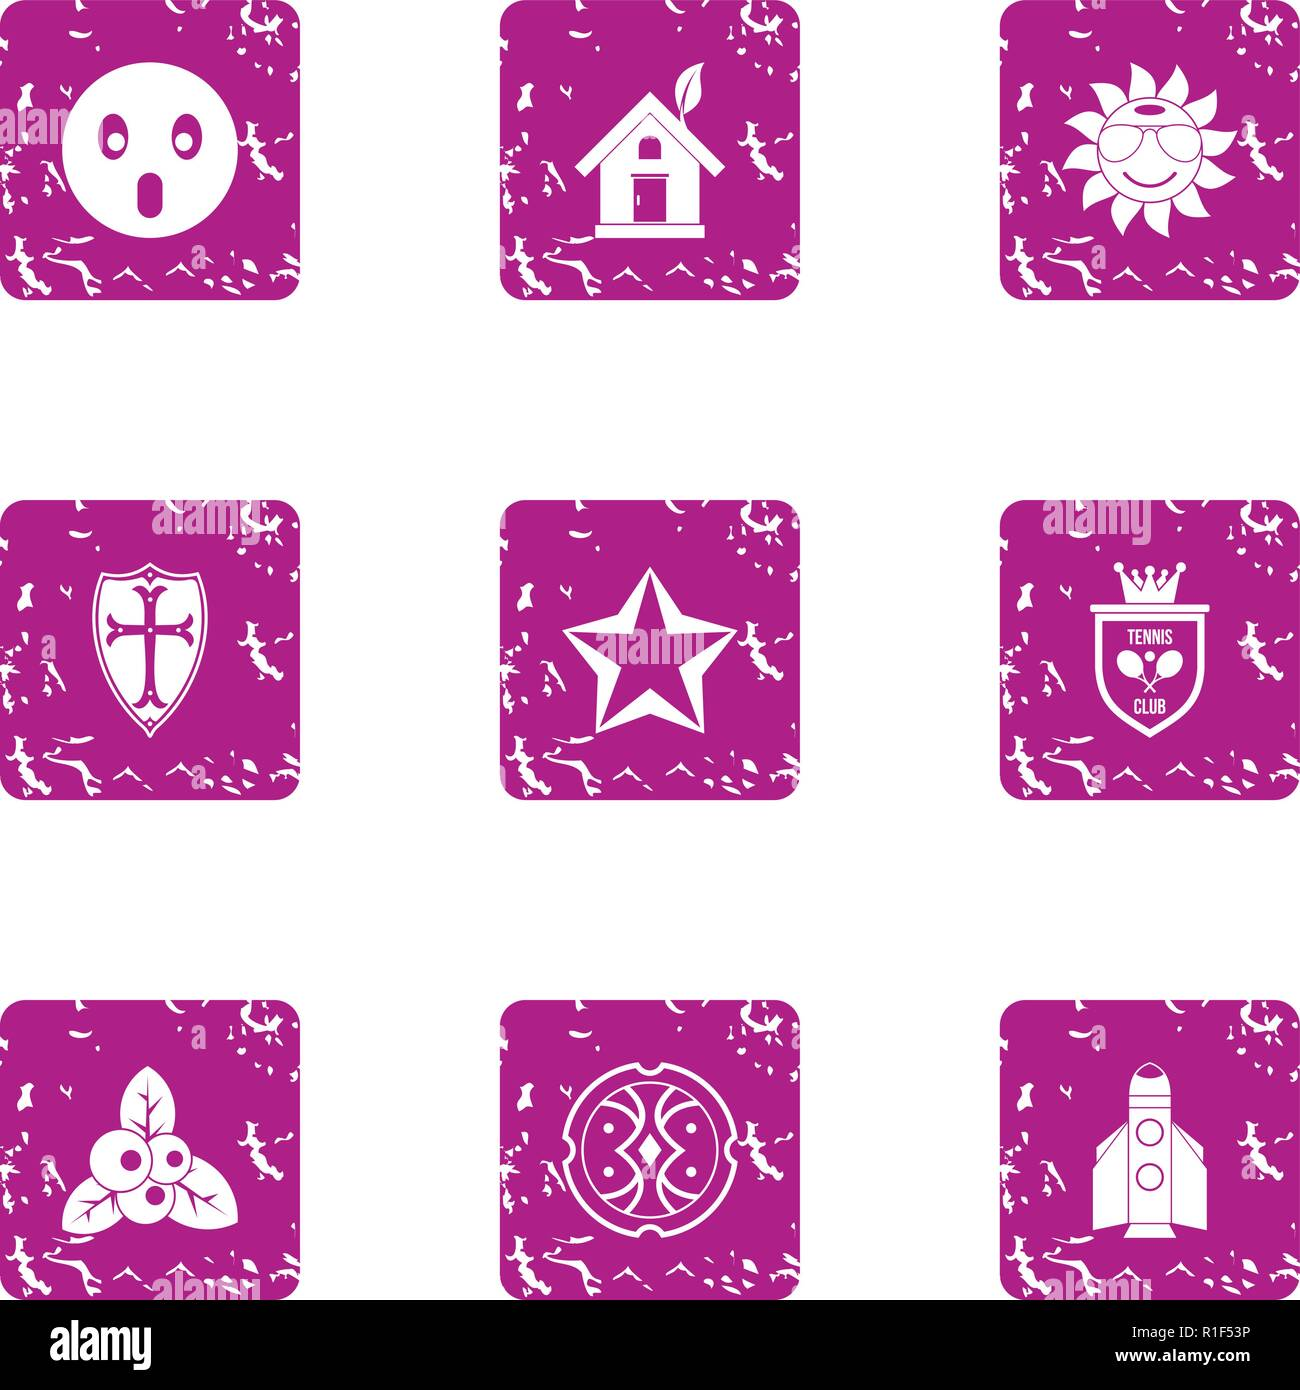 Discovery icons set, grunge style - Stock Vector